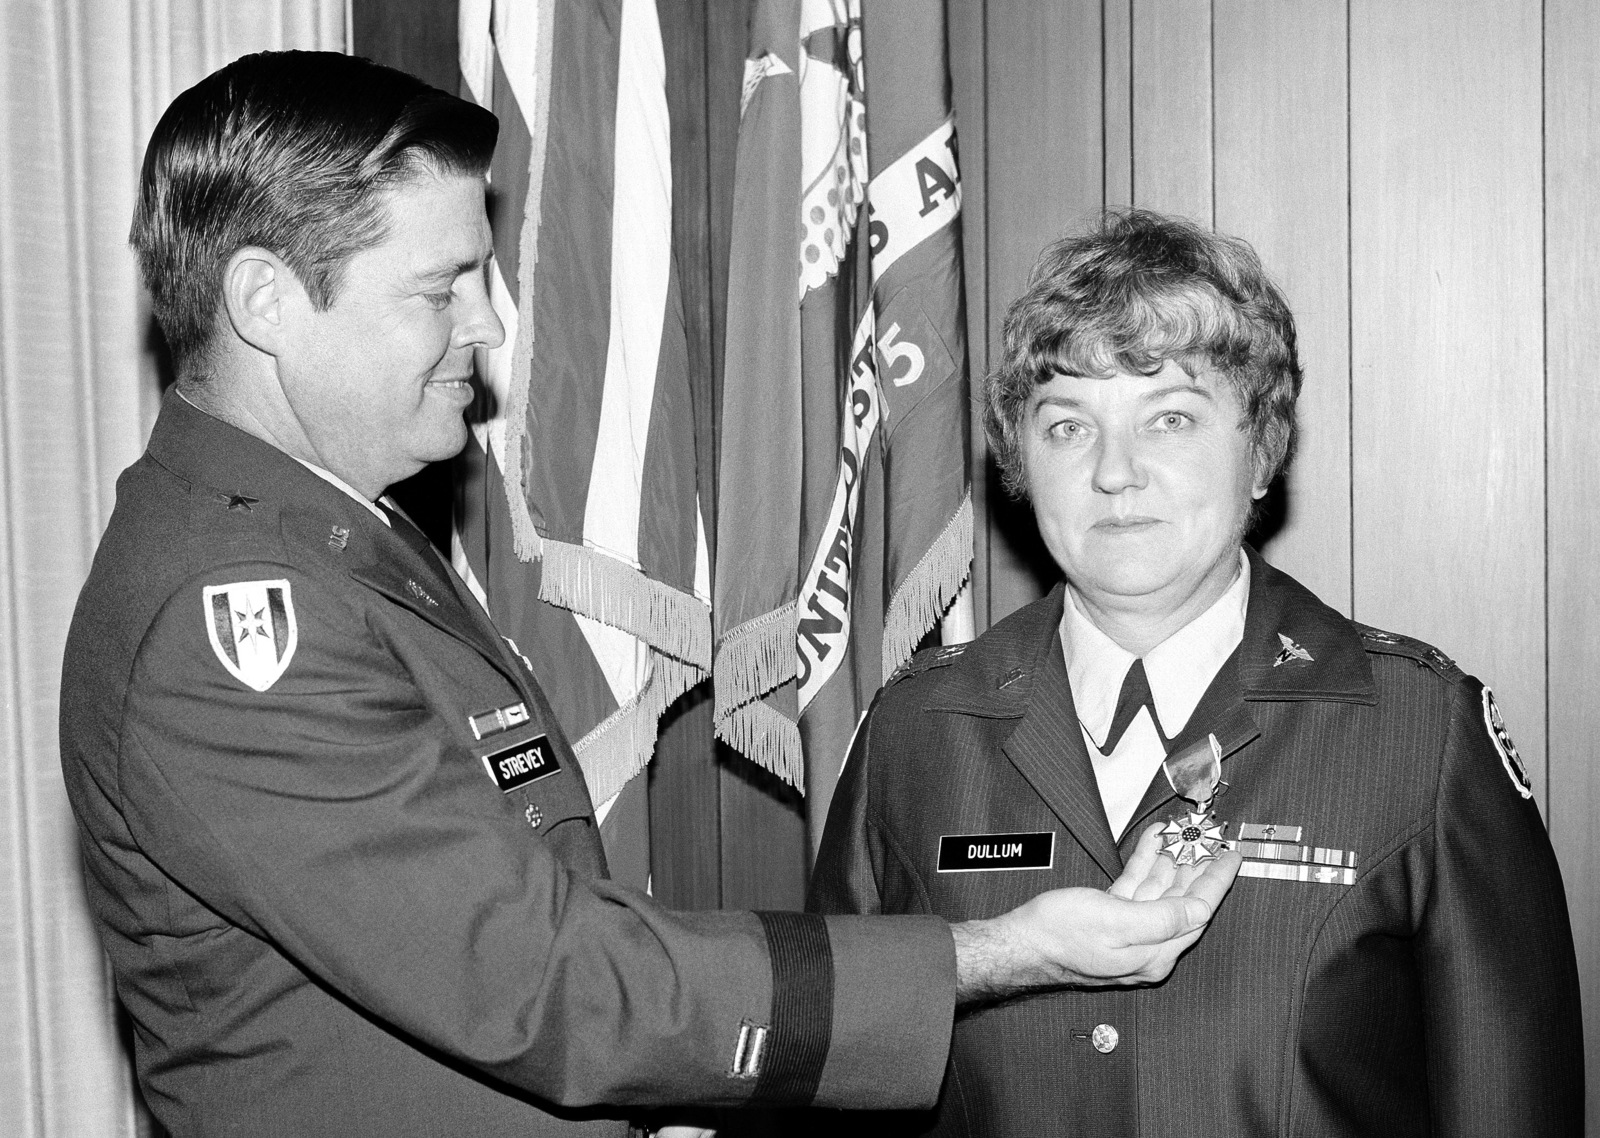 The Legion of Merit is presented to COL Marlys E. Dullum, assistant chief, Department of Nursing, Brooke Army Medical Center, by BGEN Tracy E. Strevey Jr., BAMC commander